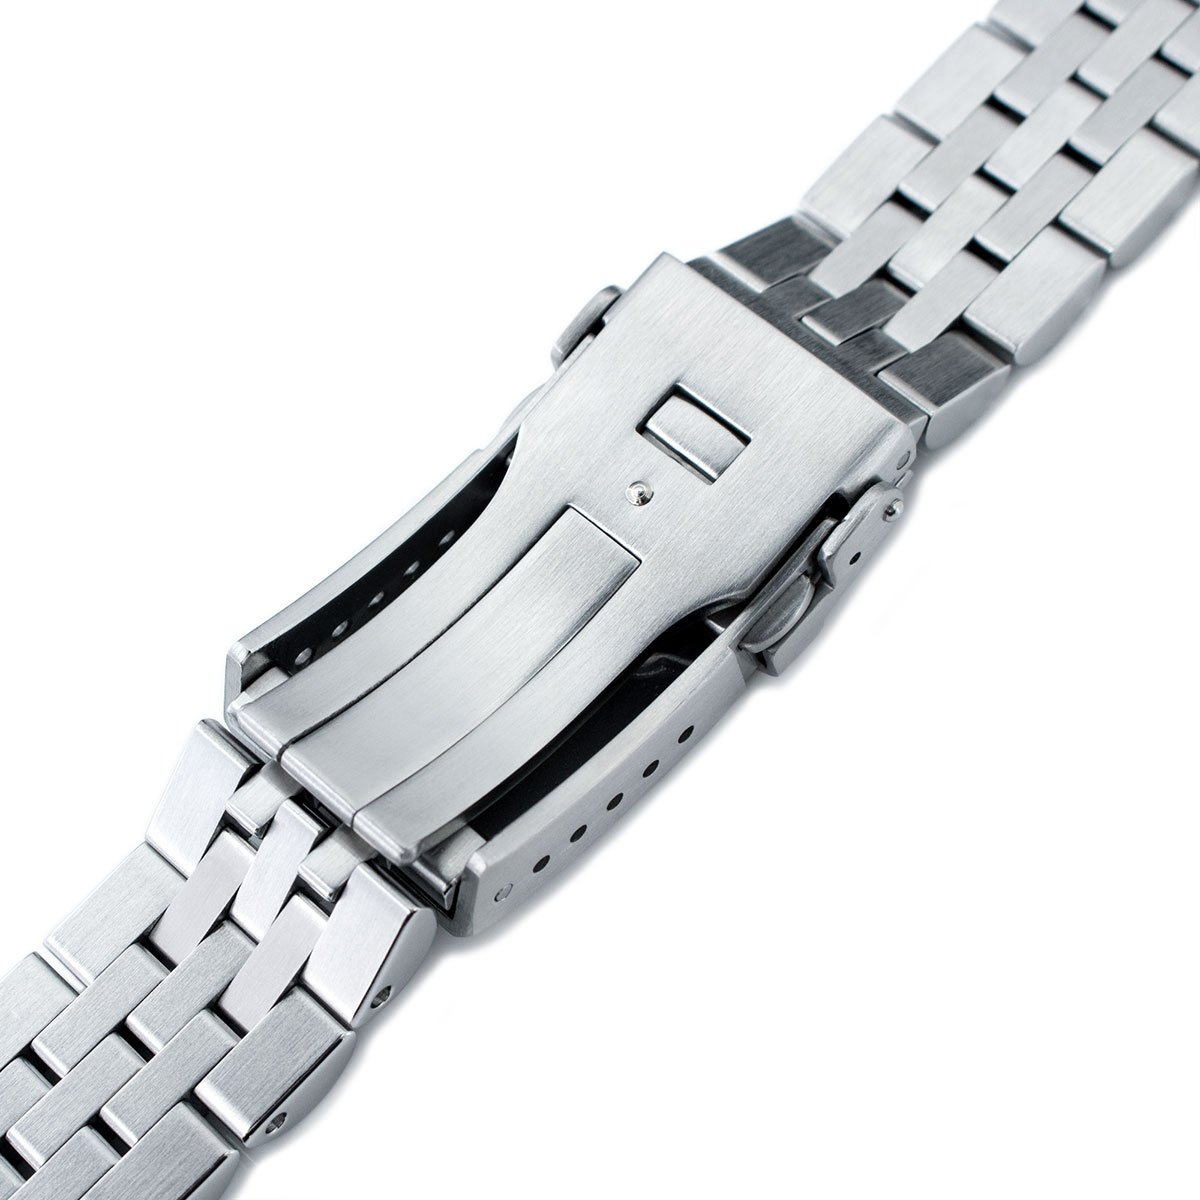 22mm ANGUS Jubilee 316L SS Watch Bracelet for Seiko SKX007, Brushed, Chamfer Clasp by Seiko Replacement by MiLTAT (Image #6)